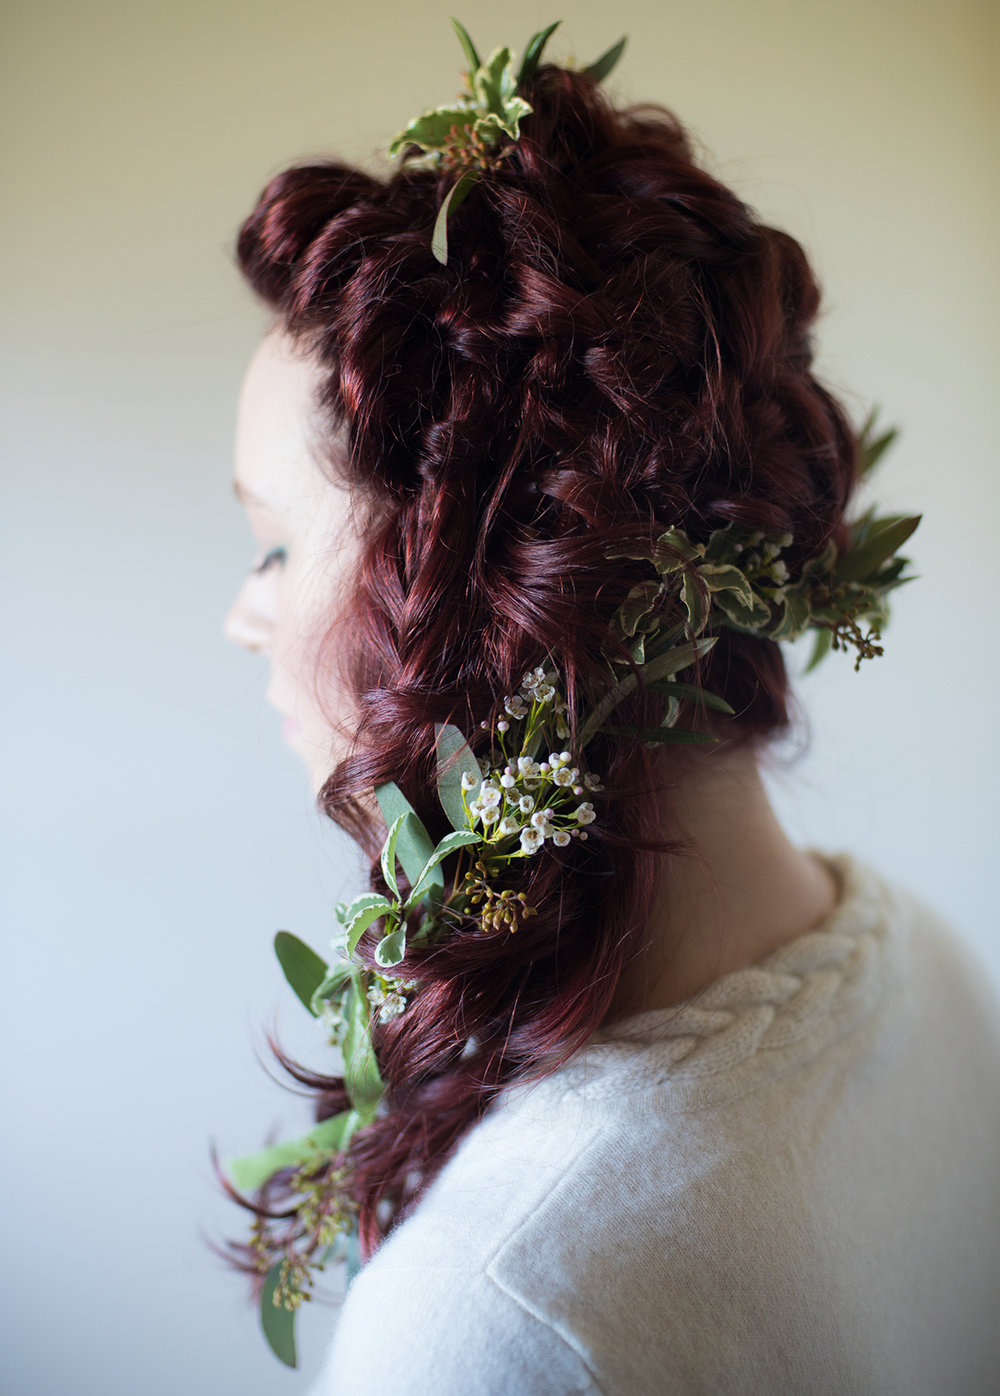 - BRIDE + SPECIAL OCCASIONBride/Wedding PartyRehearsal: Hairstyling/Makeup $95 + per personWedding day: Hairstyling/Makeup $135 + per personSpecial occasionFormal Style Up Do $75Blow Out $45Add Curl or Flat Iron to your blow out $20Braid $30* *Pricing may vary on complexity